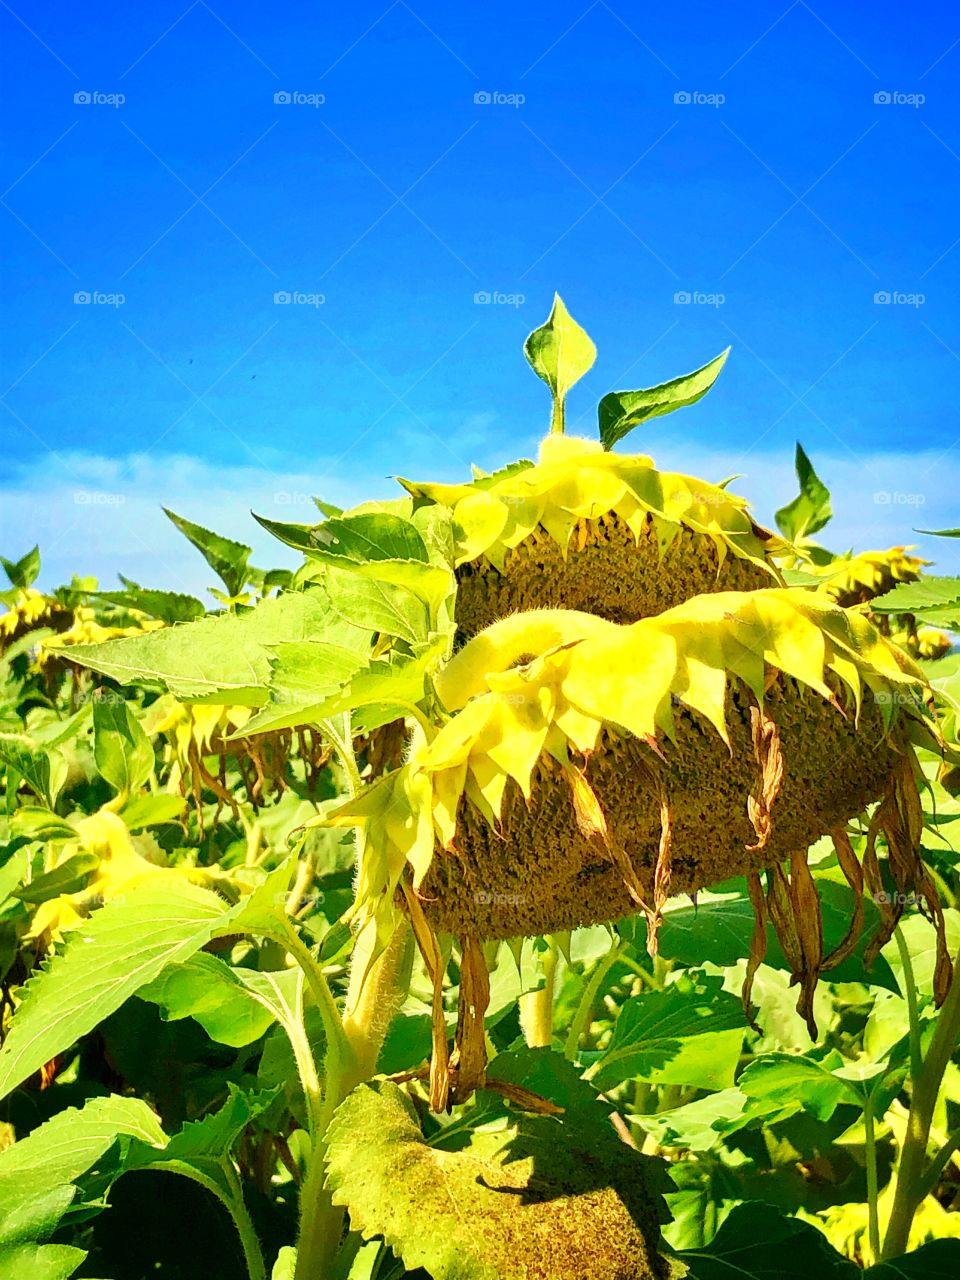 Drooping sunflowers crop at a local farm soon to be harvested blue sky September day